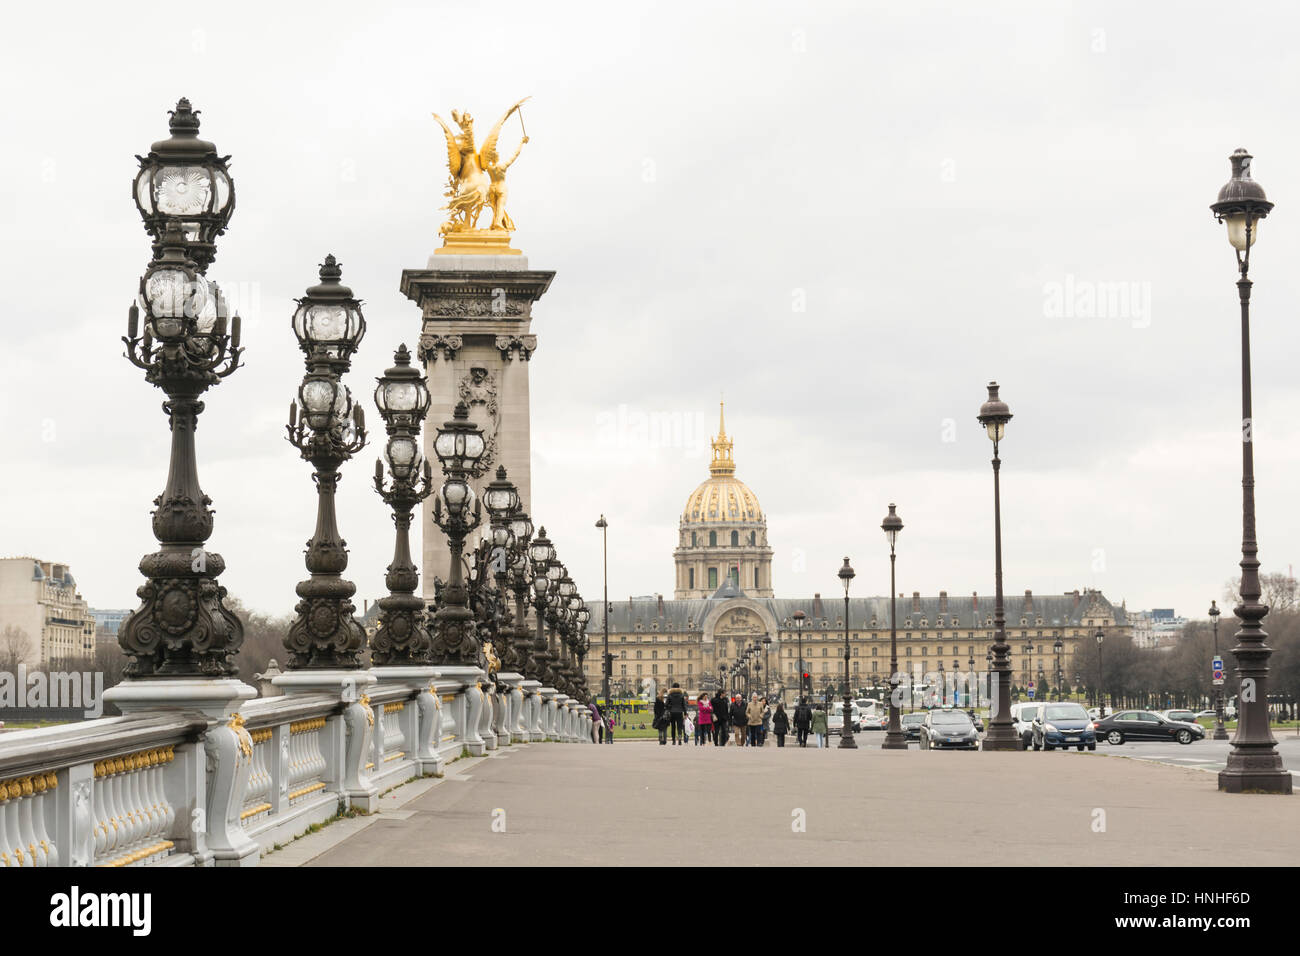 Pont Alexandre III with Chapel of Saint-Louis-des-Invalides in the background, Paris, France - Stock Image